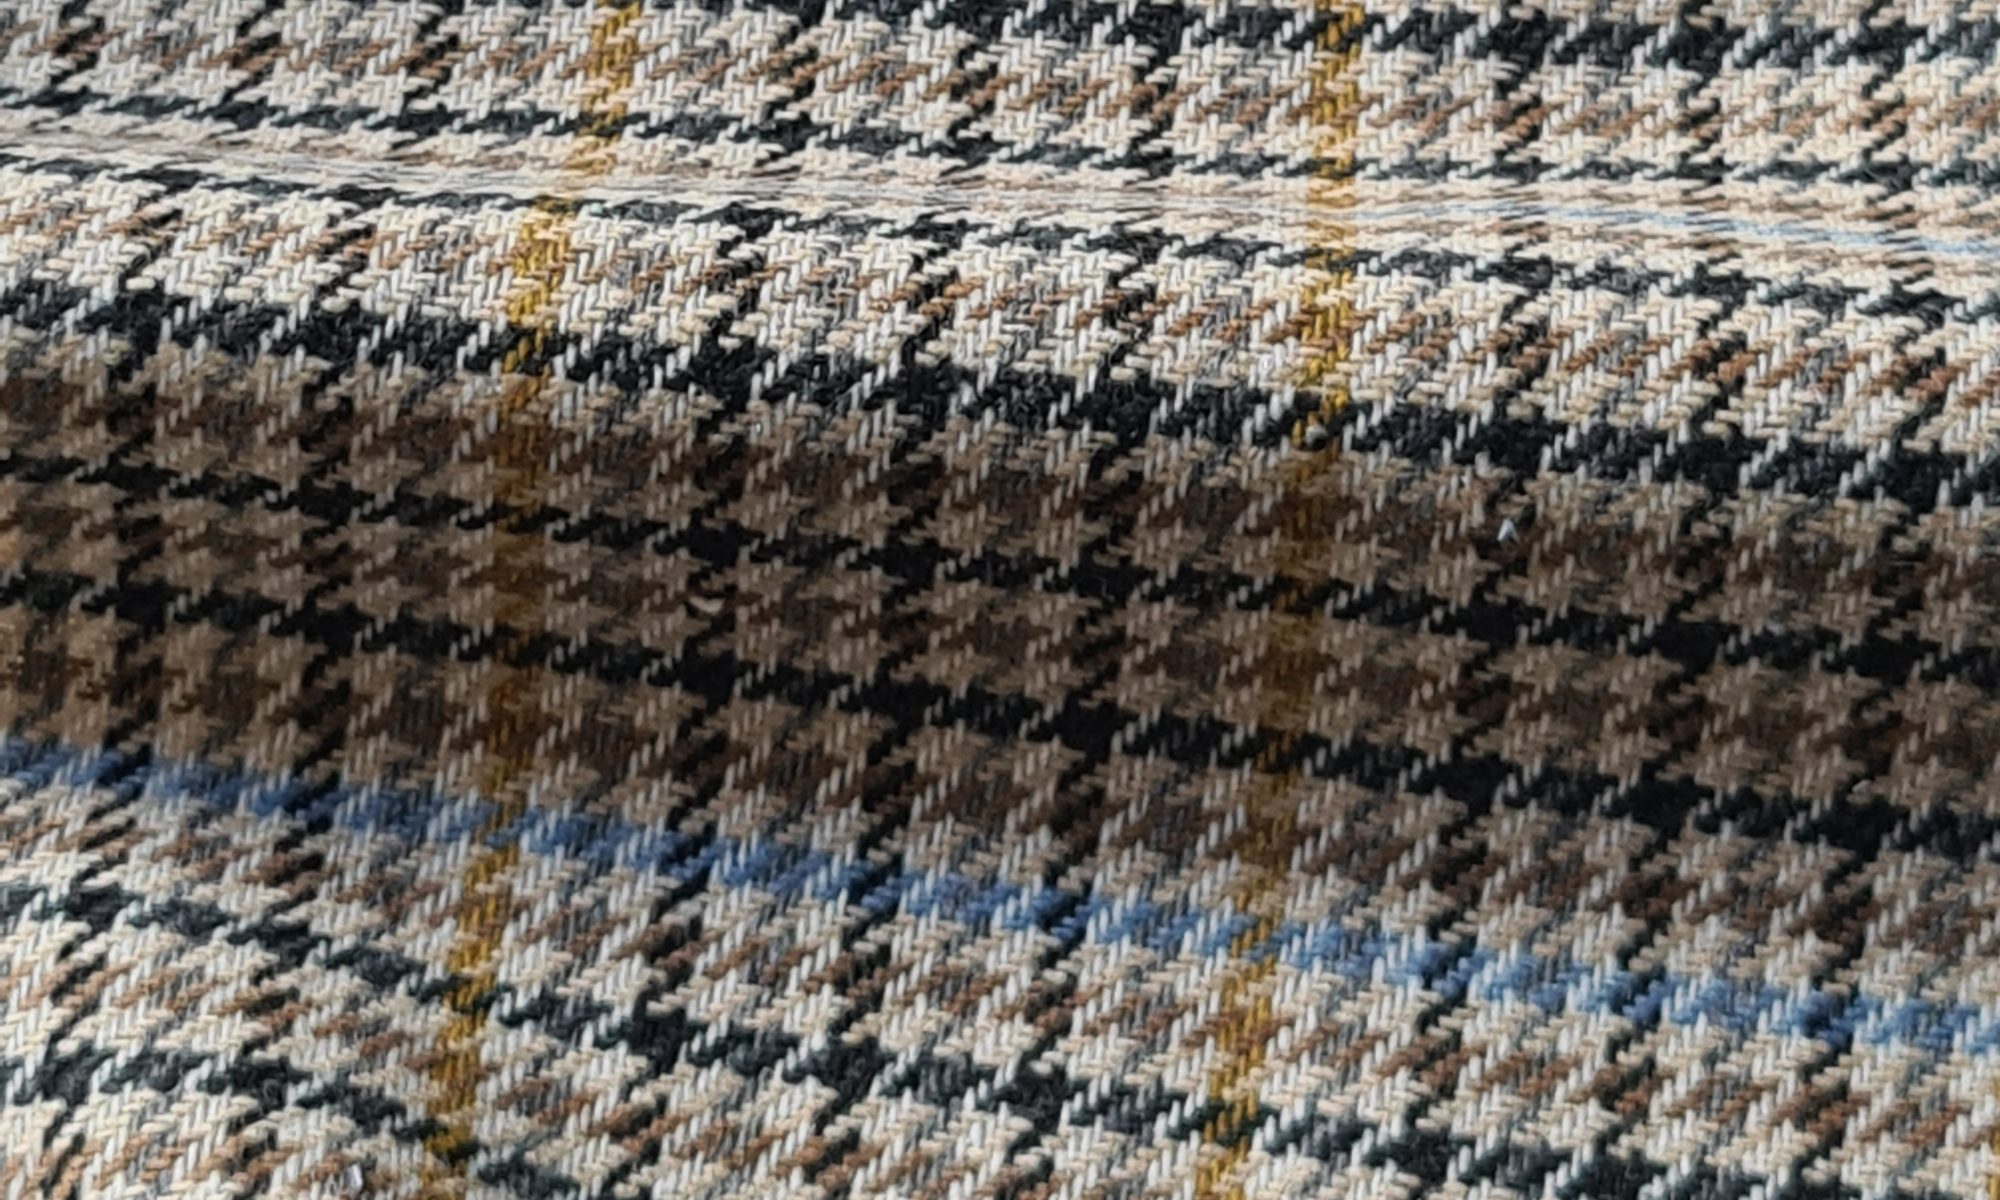 7664 glen check prince of wales brown jacket WIDTH cm147 WEIGHT gr380 - gr258 square meter - COMPOSITION 20 Wool 50 Acrylic 25 Polyester - 6200mts